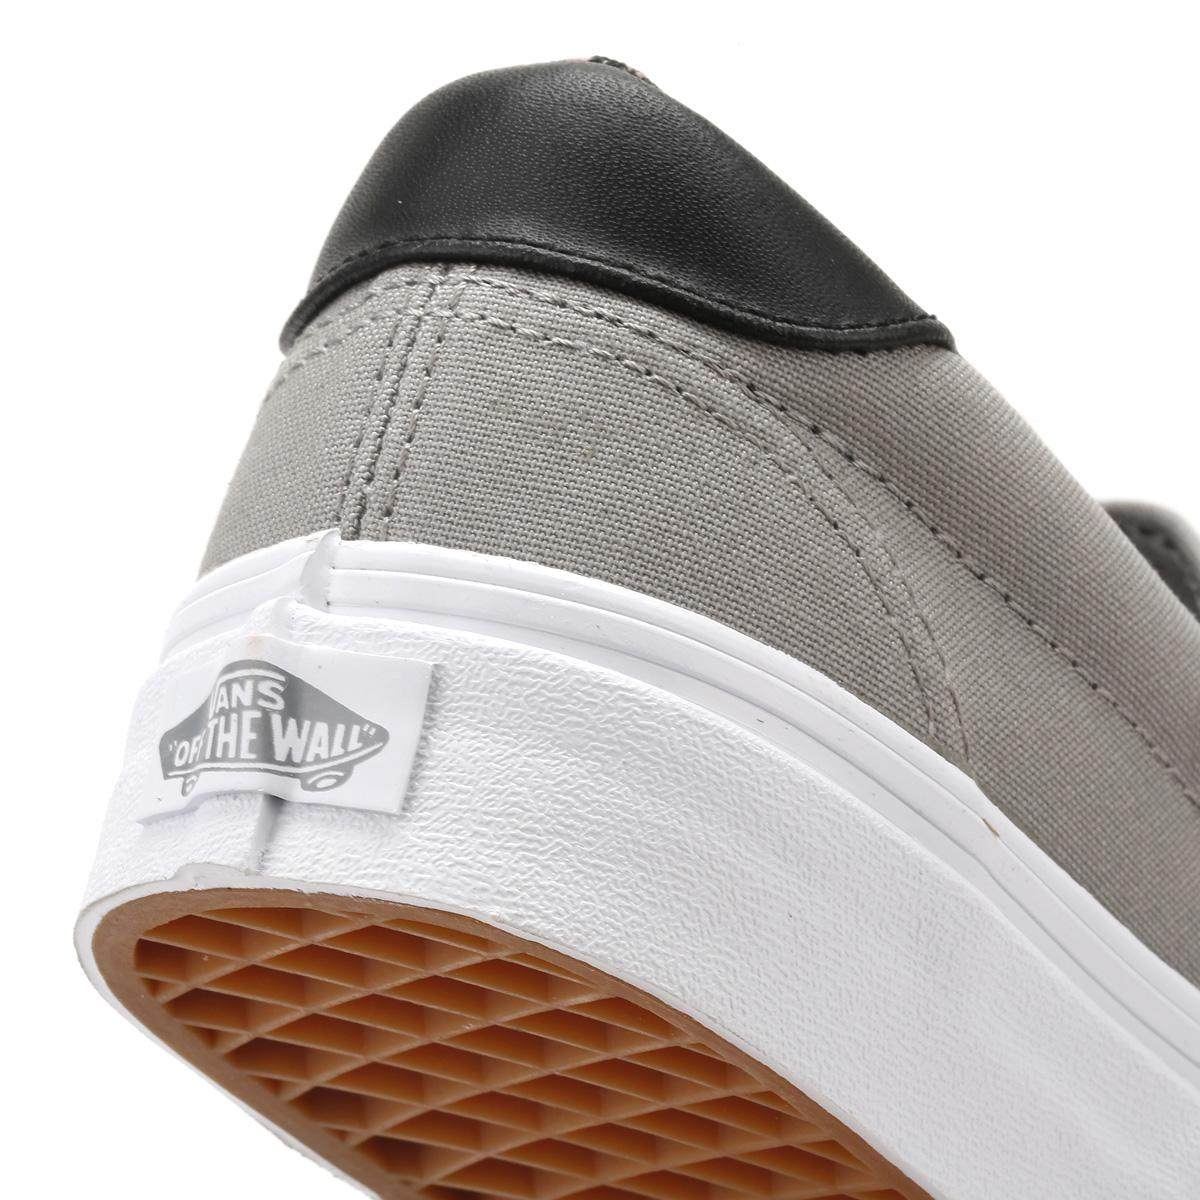 a8ebcf44ad Vans Mens Dolphins wild Dove Slip-on 59 Trainers in Gray for Men - Lyst